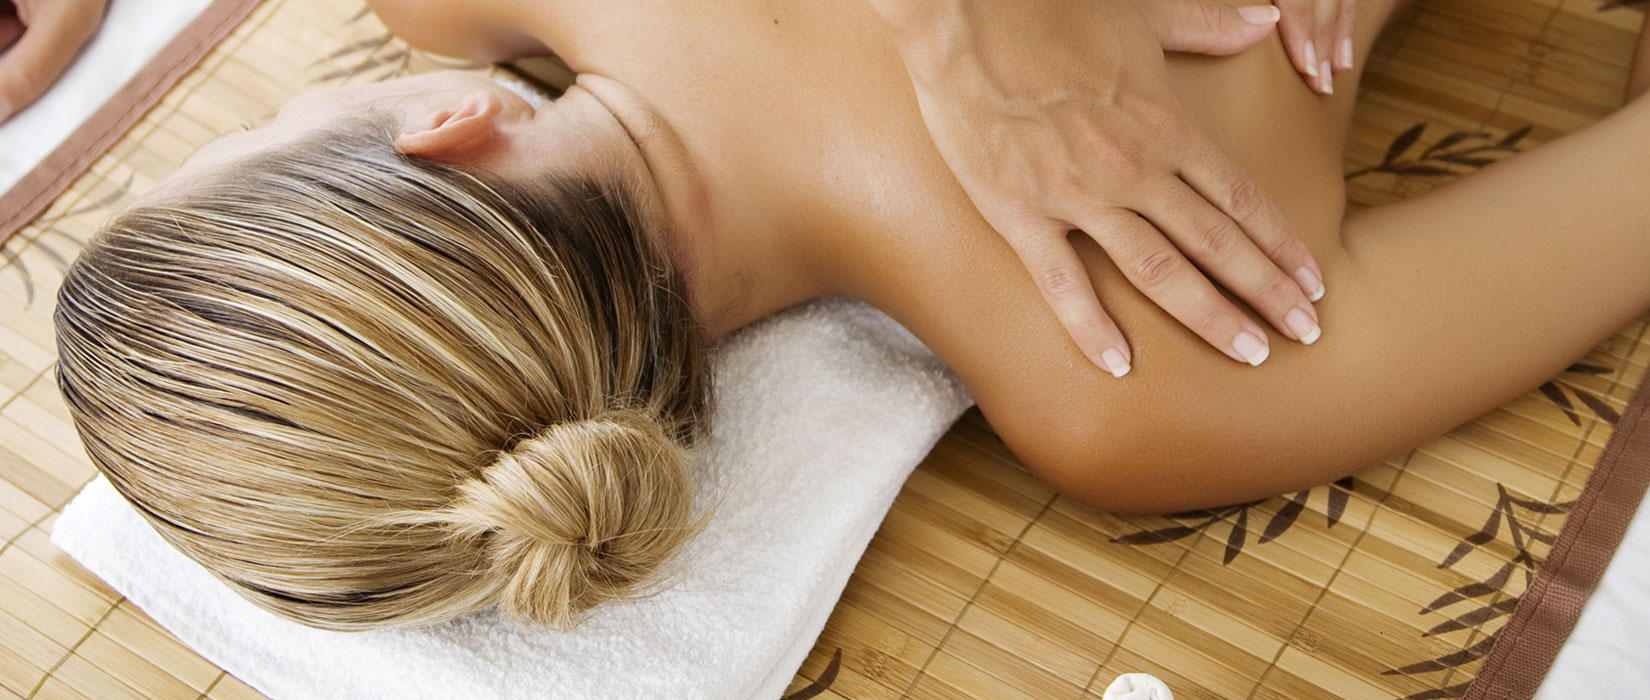 massage therapy tustin california 92780